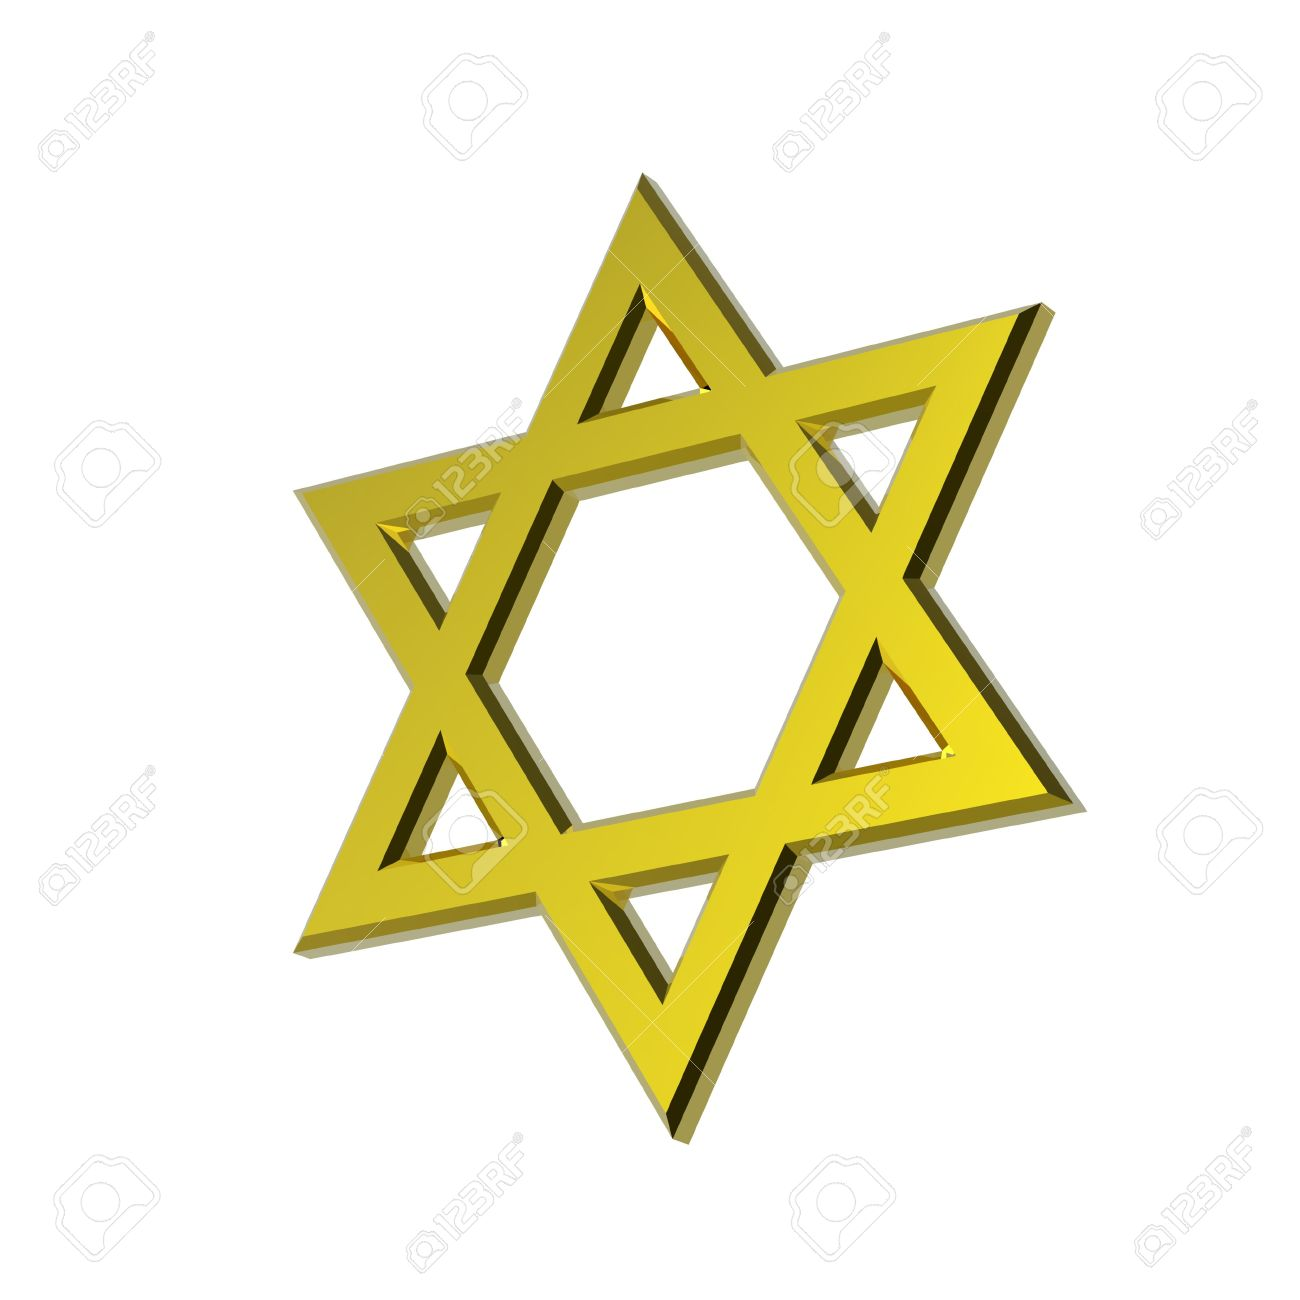 Gold Judaism Religious Symbol Star Of David Isolated On White